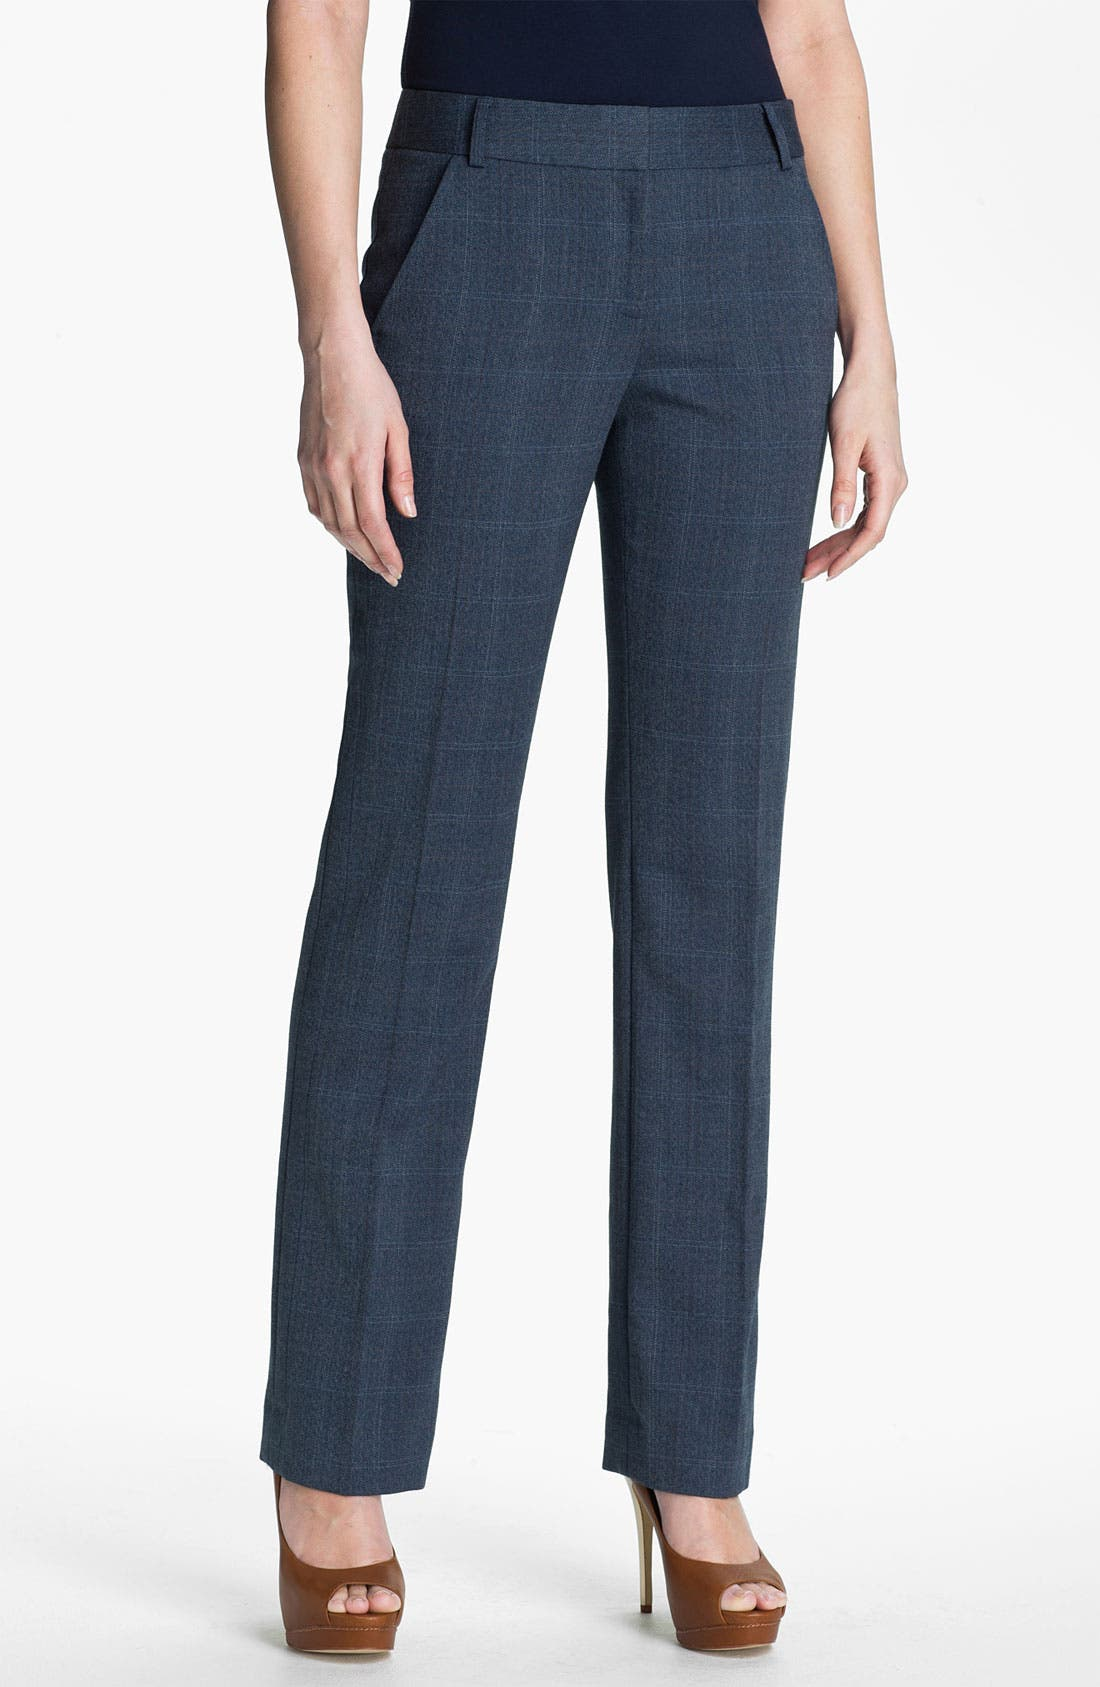 Alternate Image 1 Selected - Anne Klein Patterned Menswear Pants